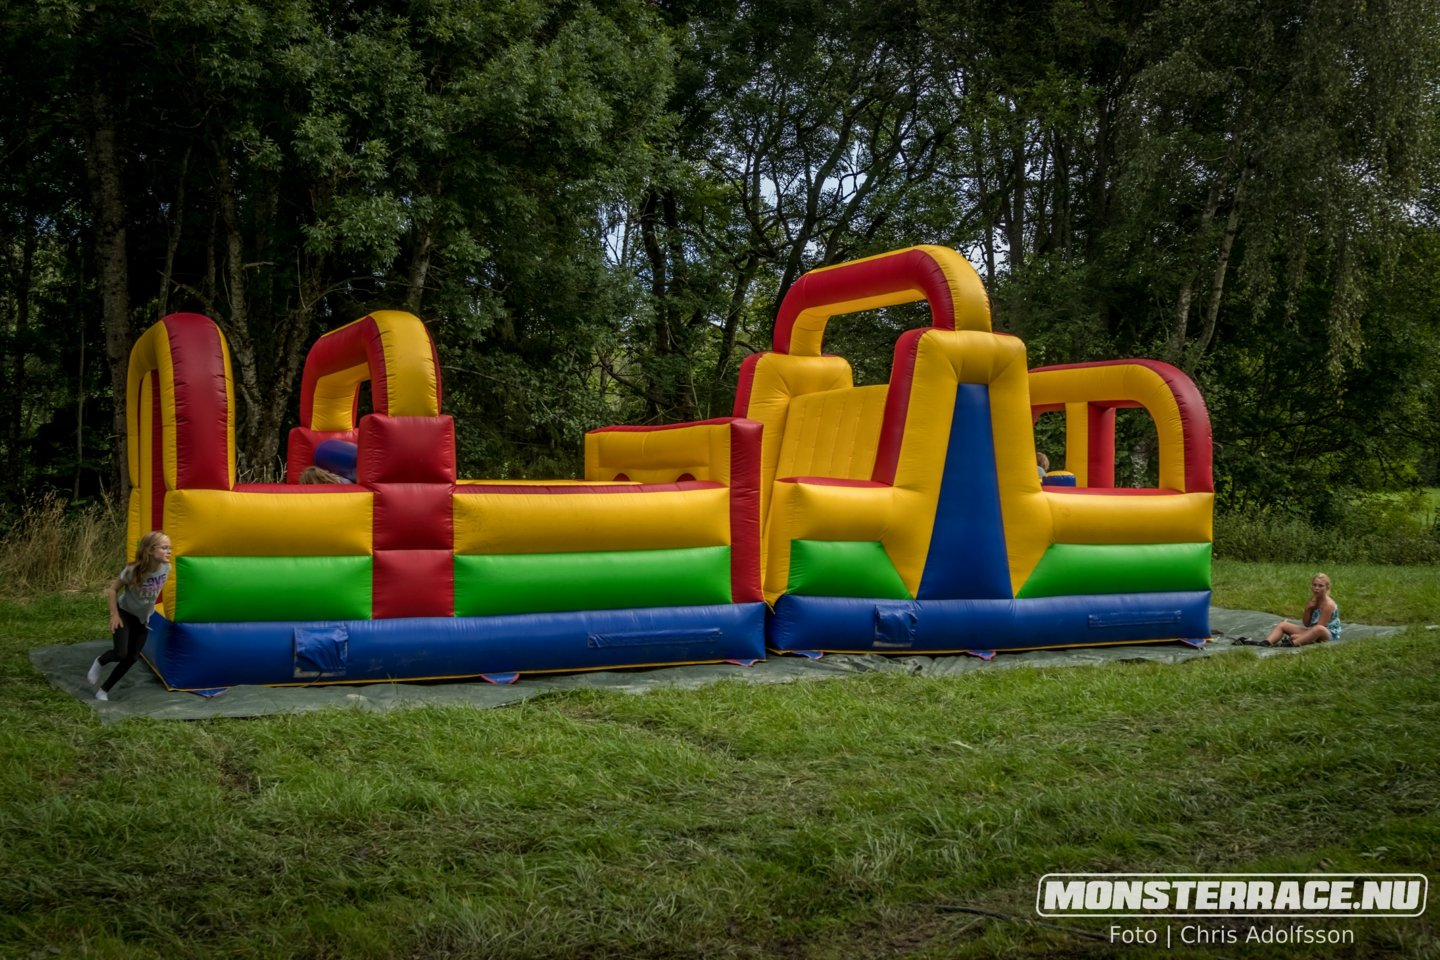 Monsterrace Ed dag 1 (3)